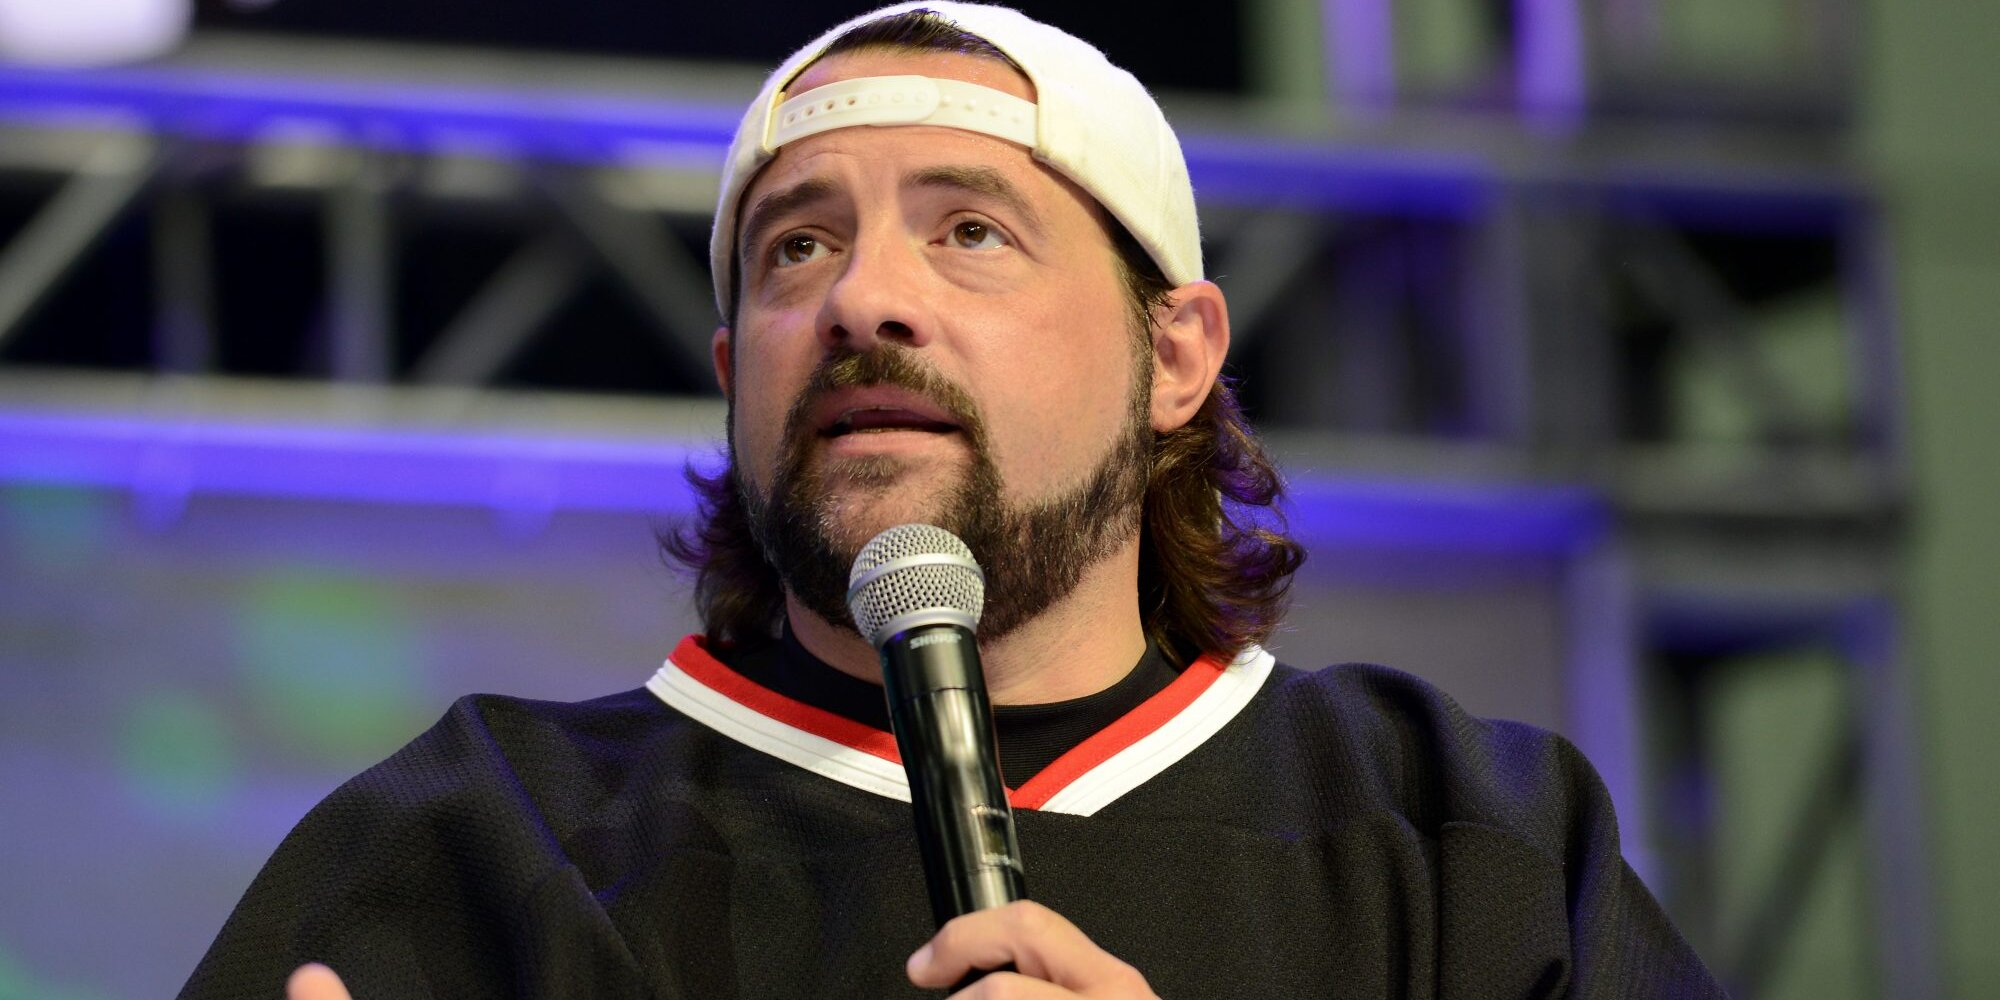 Kevin Smith Survived a 'Widowmaker' Heart Attack. Here's Why That's So Uncommon